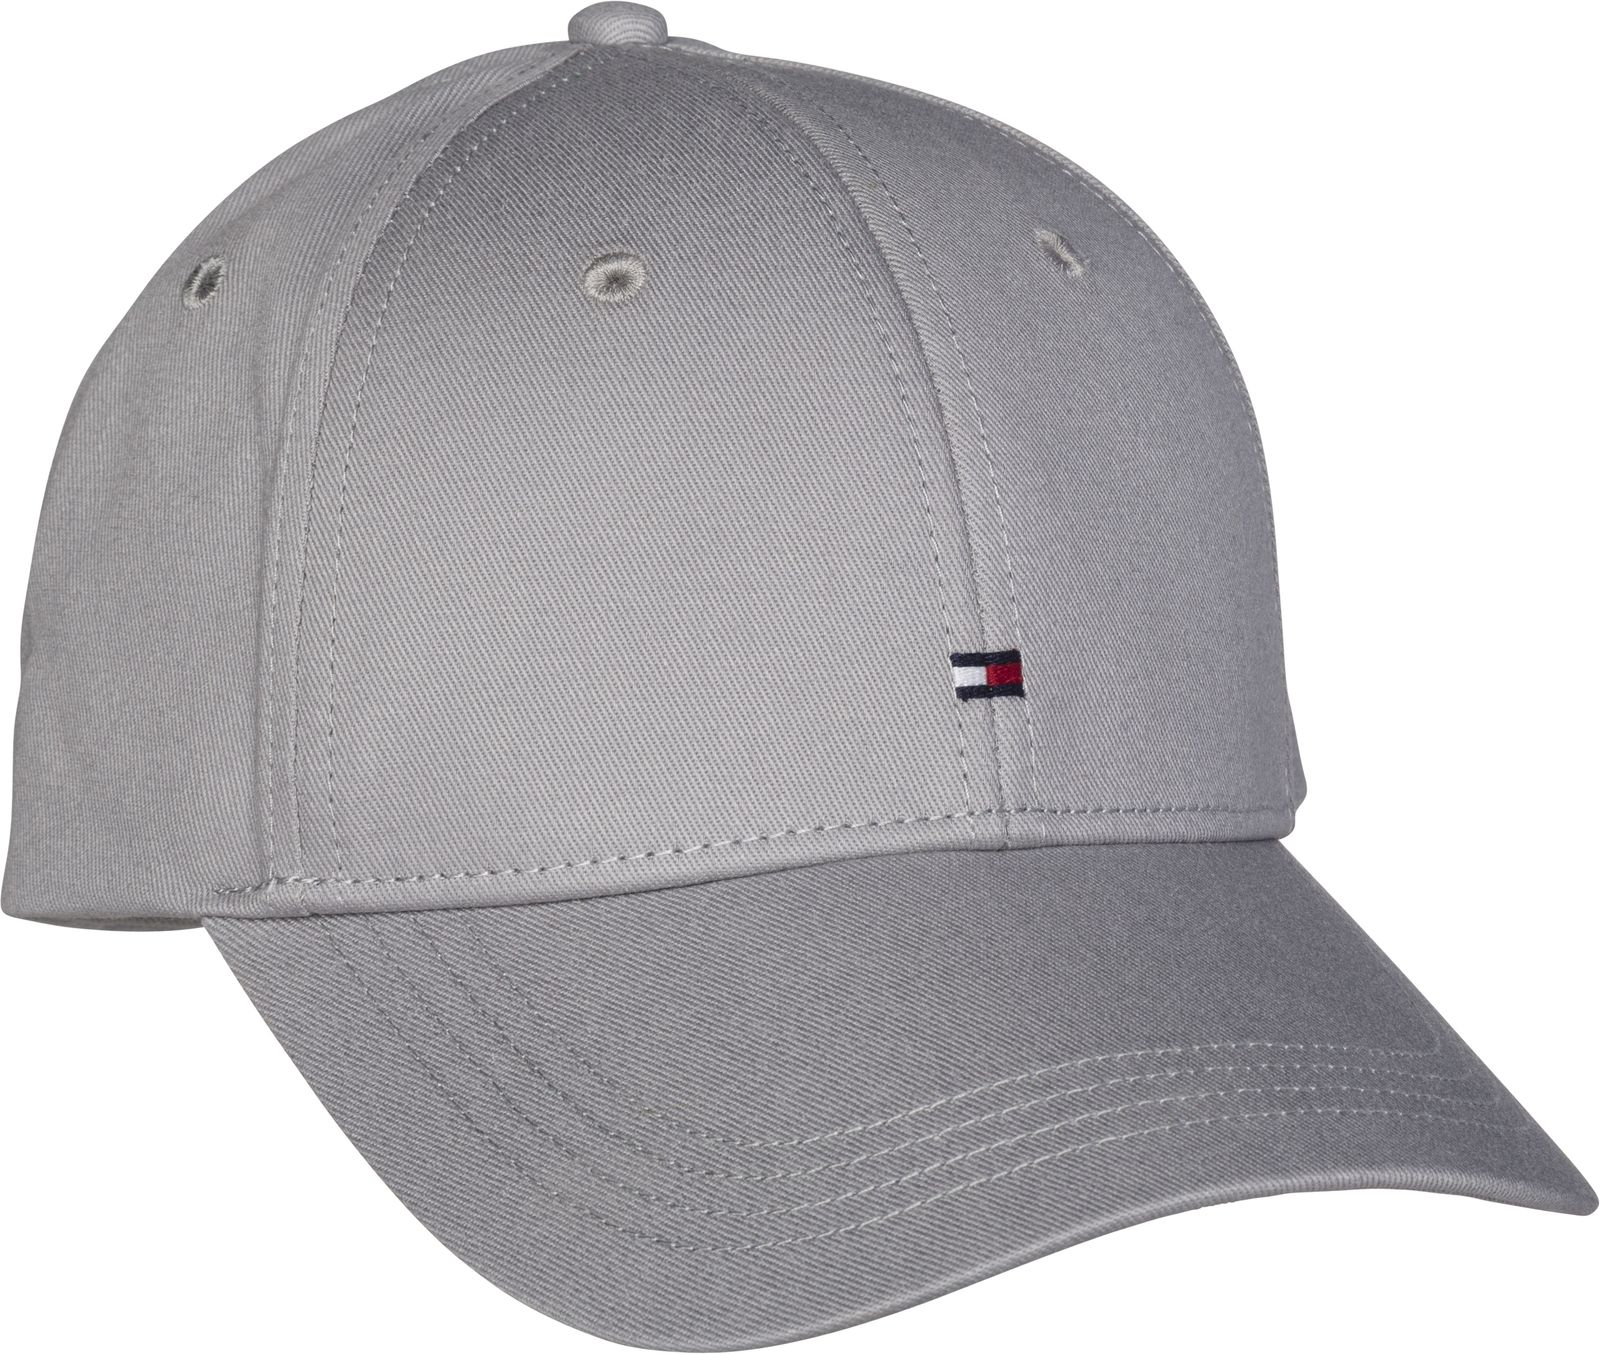 101ab71517c ... Invoice and sofortüberweisung.deTOMMY HILFIGER Classic BB Cap Drizzle  Grey   25